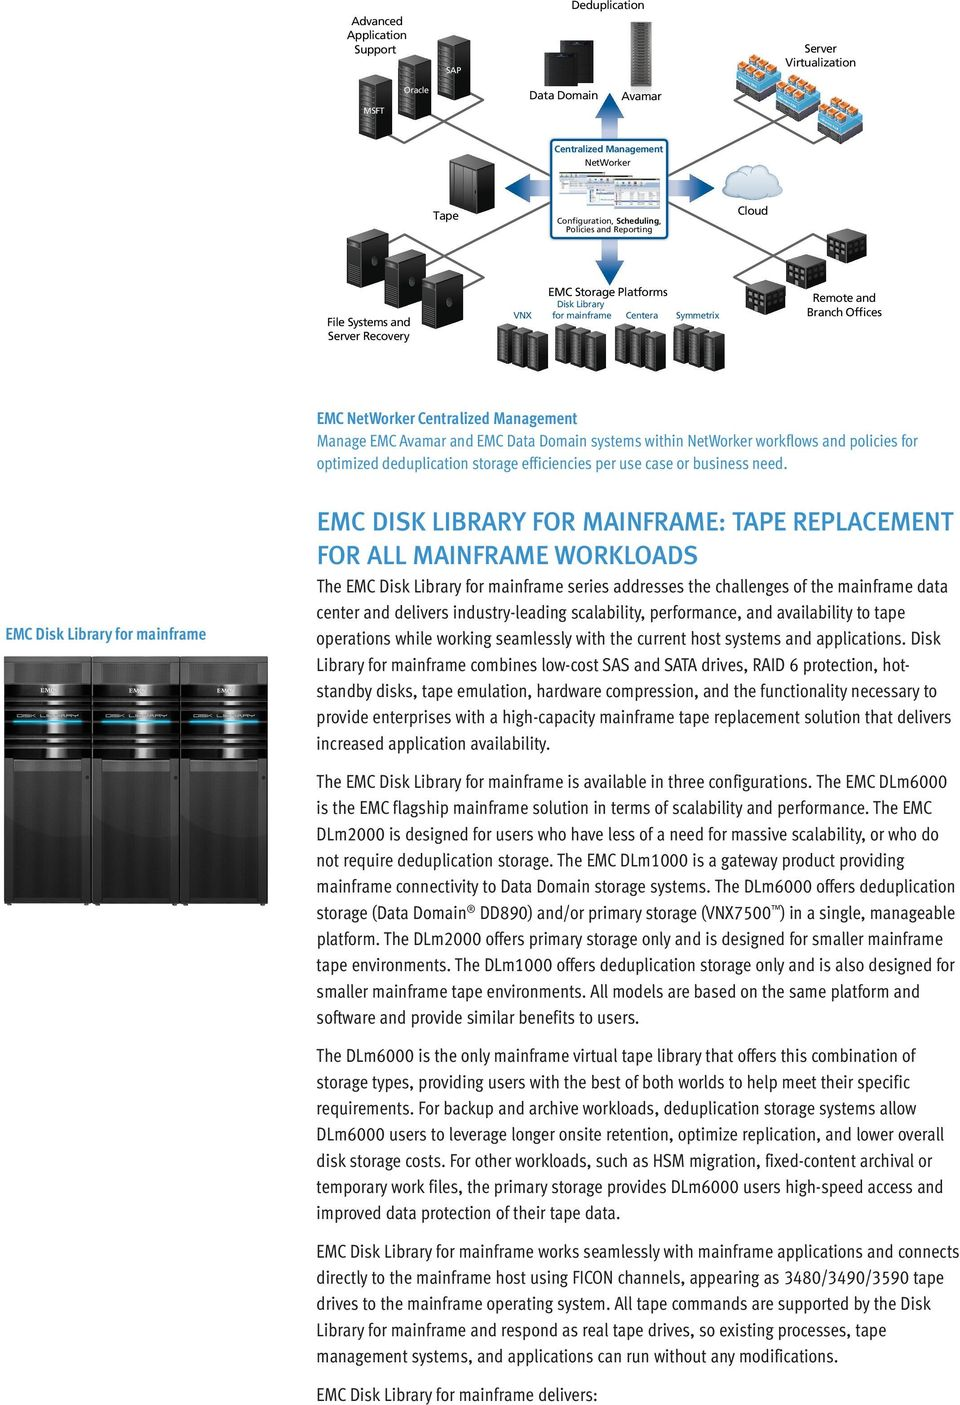 systems within NetWorker workflows and policies for optimized deduplication storage efficiencies per use case or business need.